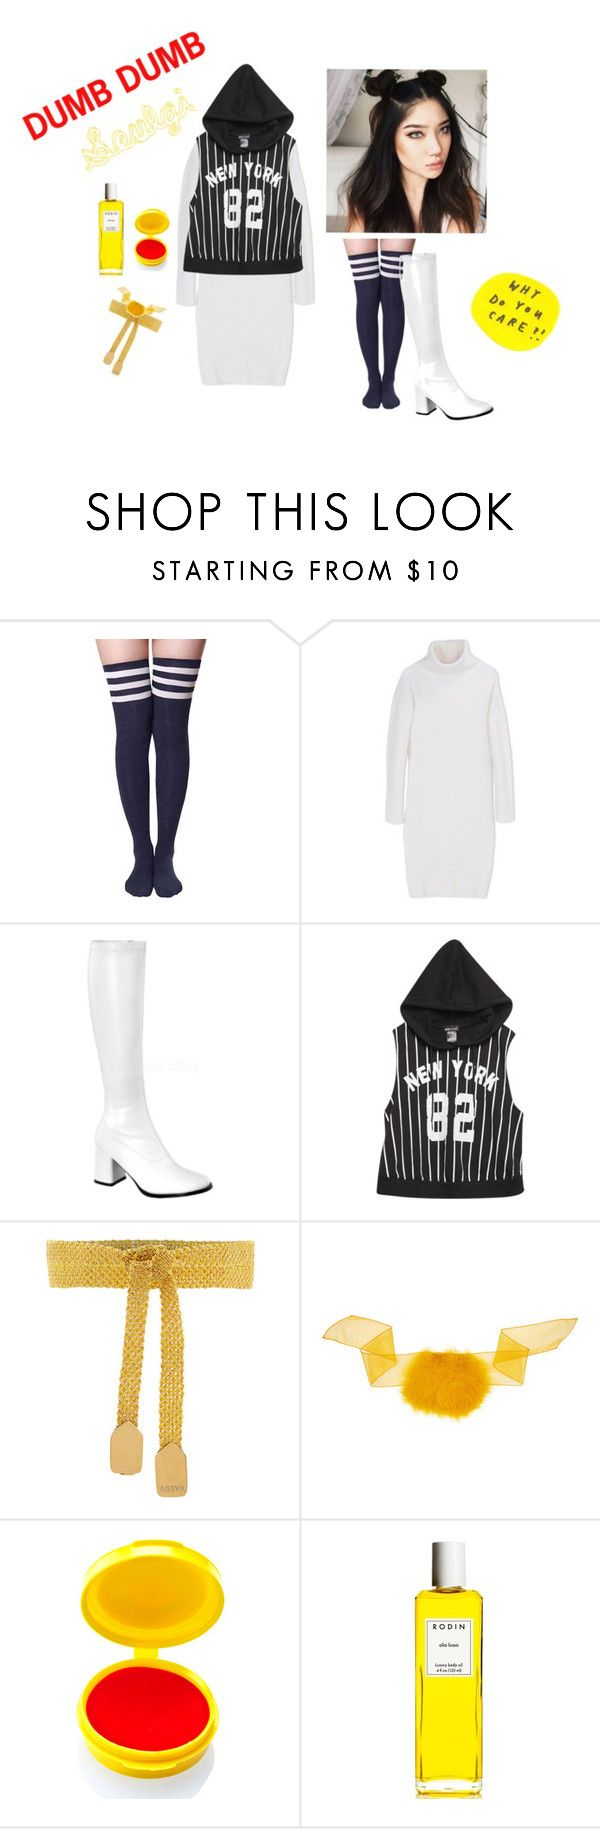 """Dumb Dumb rv Seulgi"" by kkateyg on Polyvore featuring DKNY, Wet Seal, Assya, Sonia Rykiel, Medusa's Makeup and Rodin Olio Lusso"